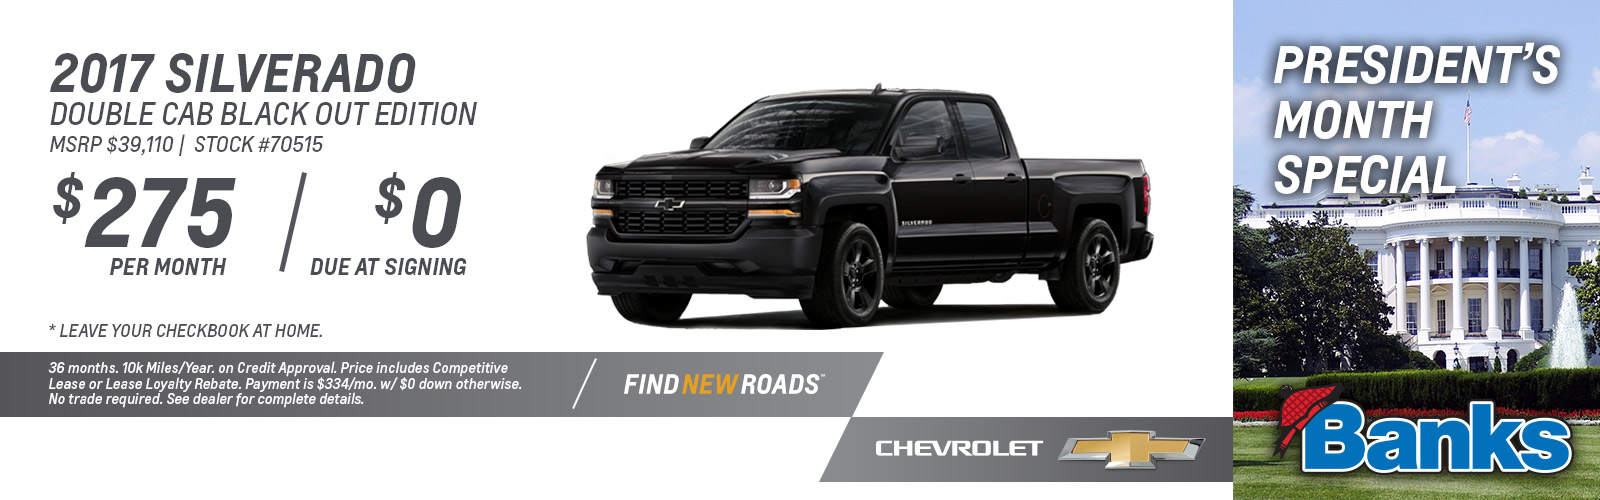 2017 Chevy Silverado Double Cab Black Out Edition President's Day Special